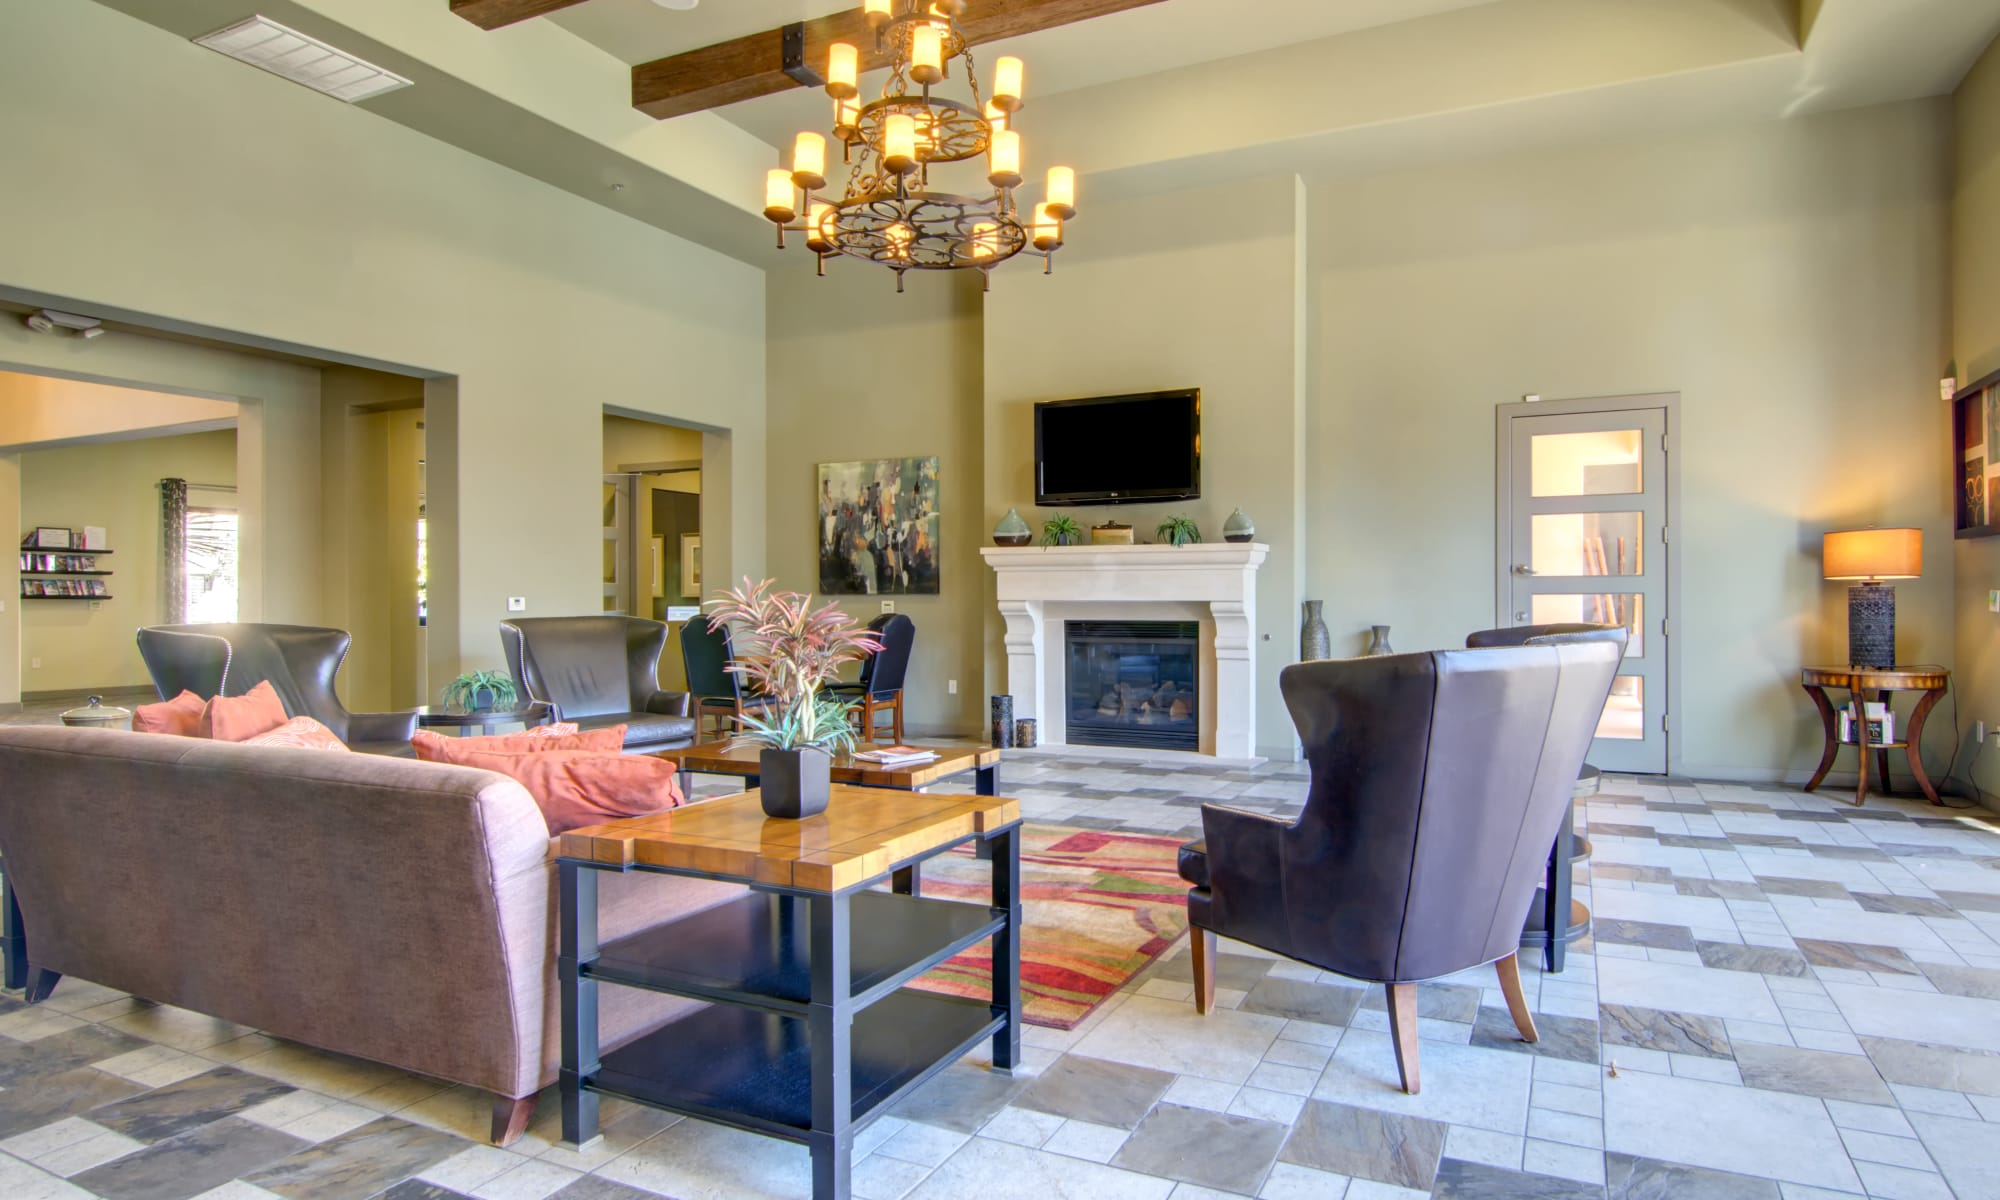 Apartments at The Residences at Stadium Village in Surprise, Arizona